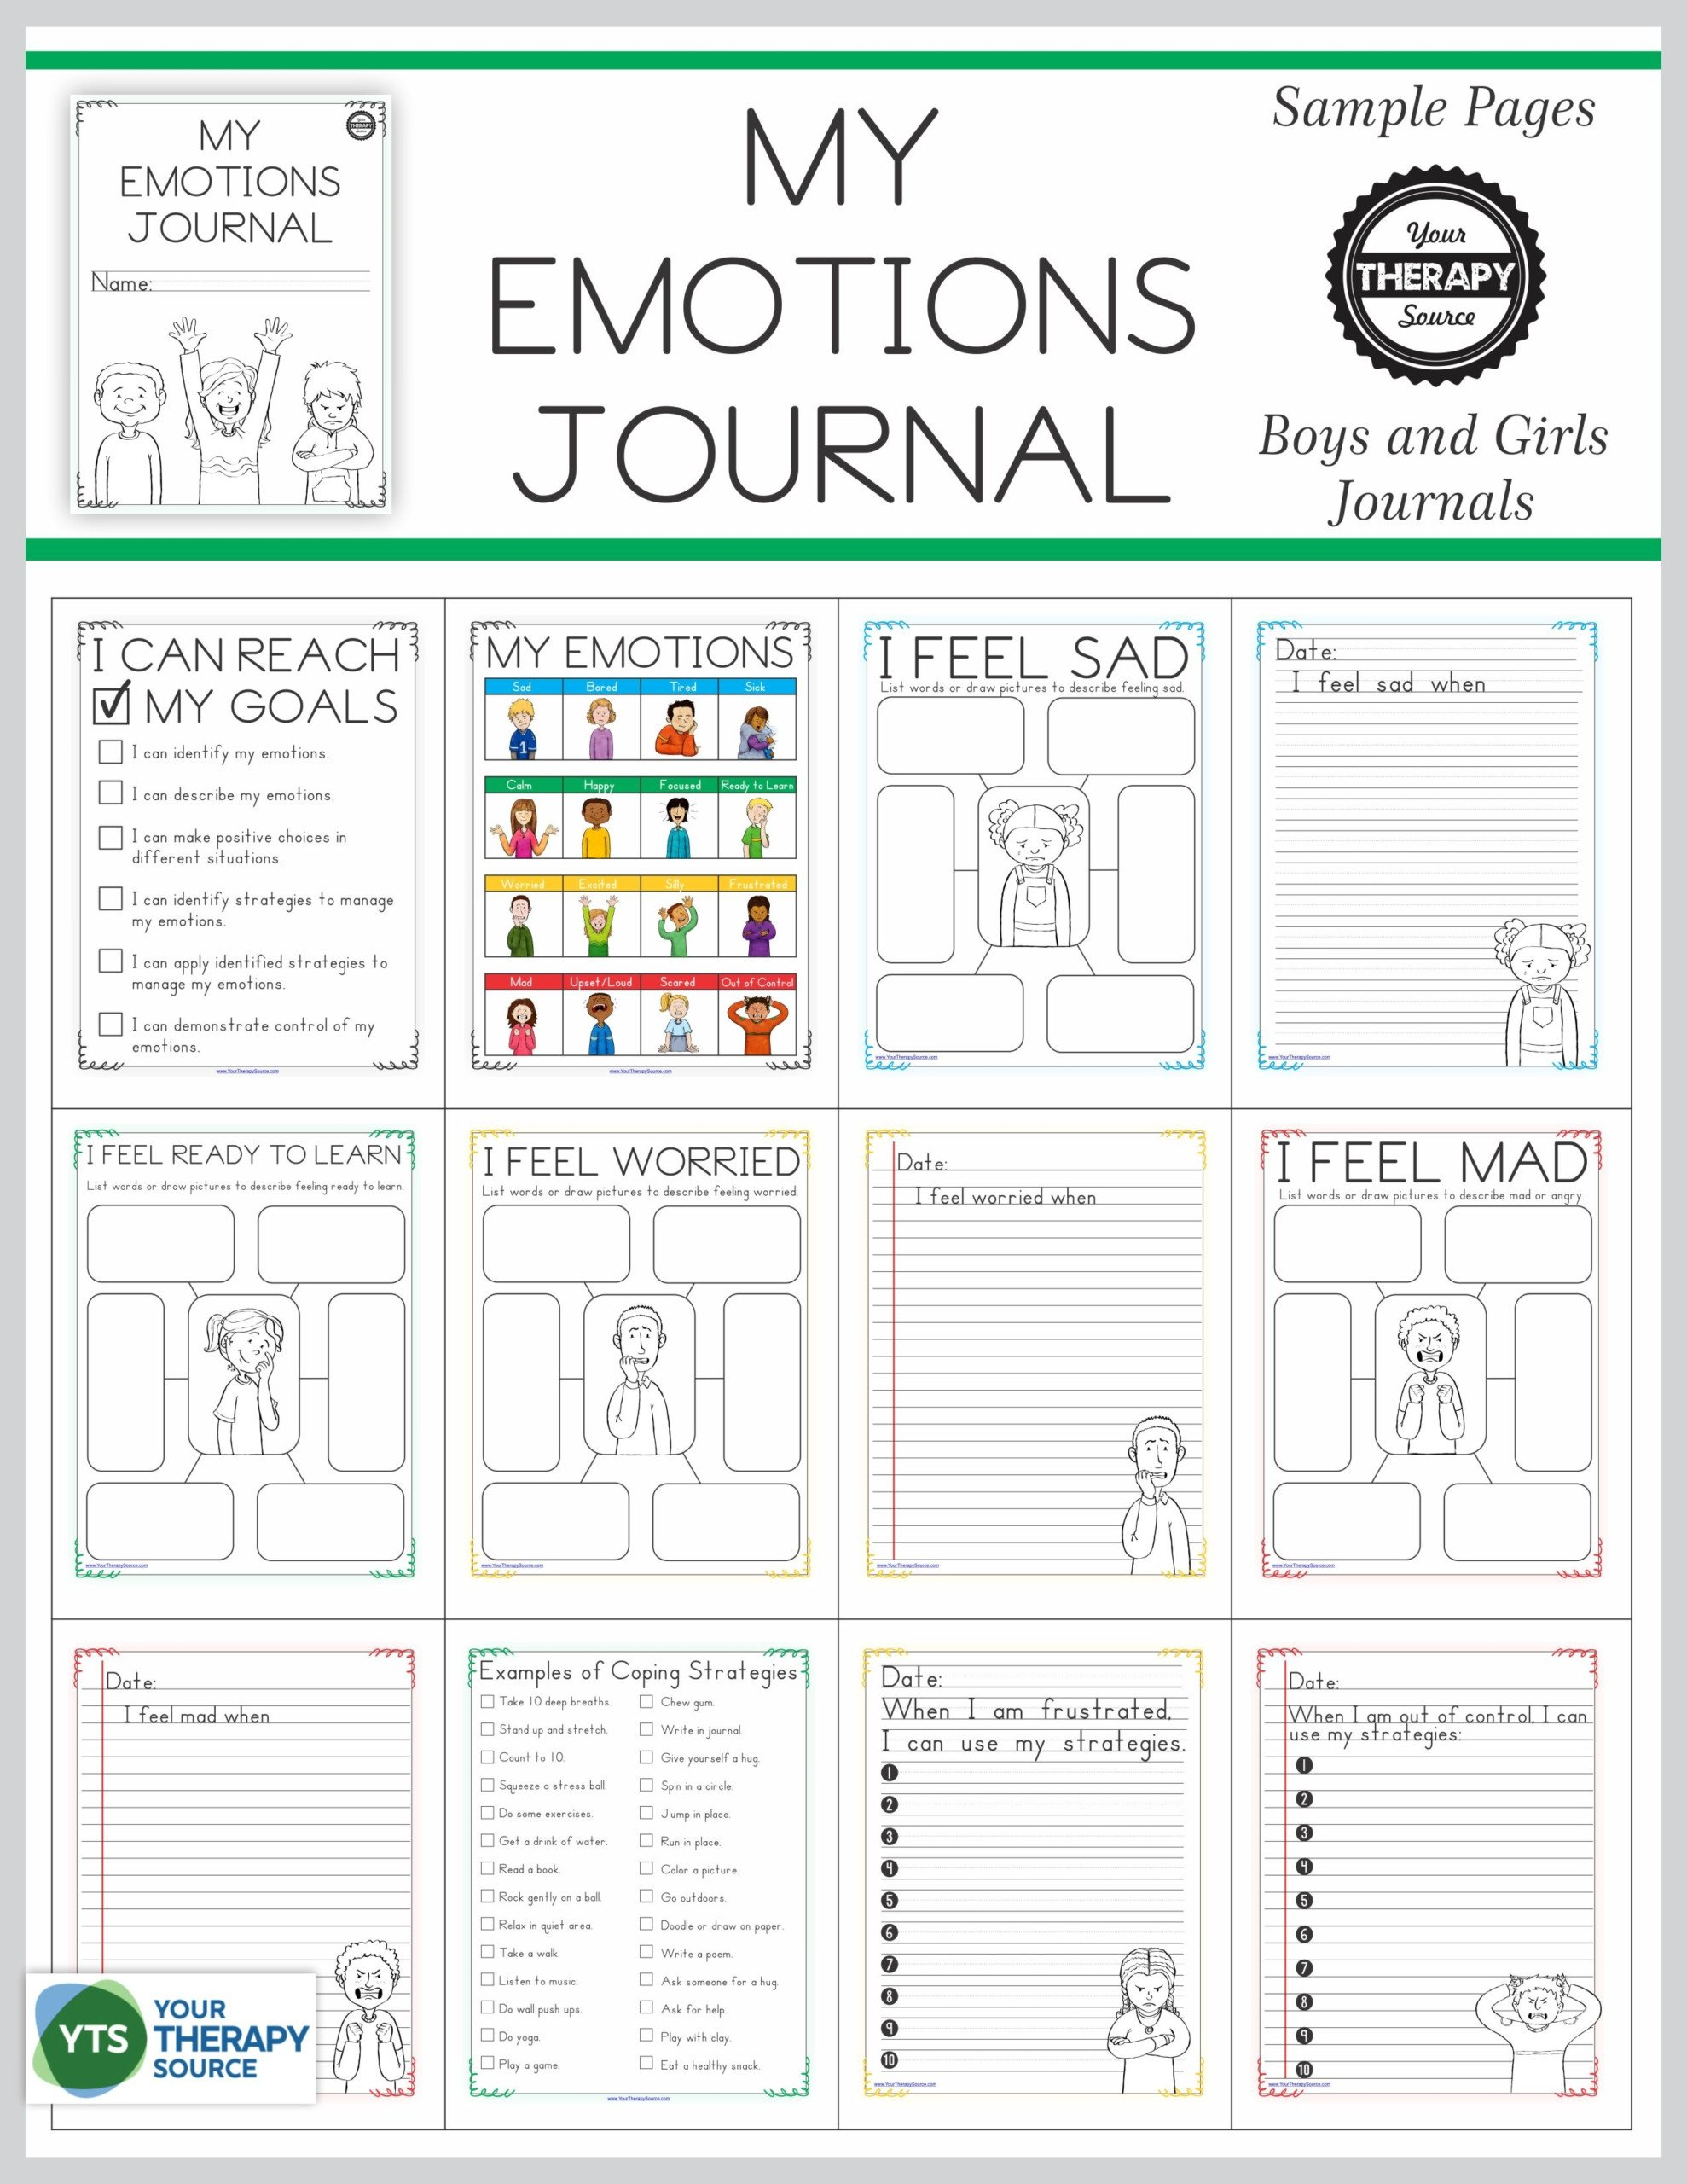 My Emotions Journal Cover and Sample Pages scaled